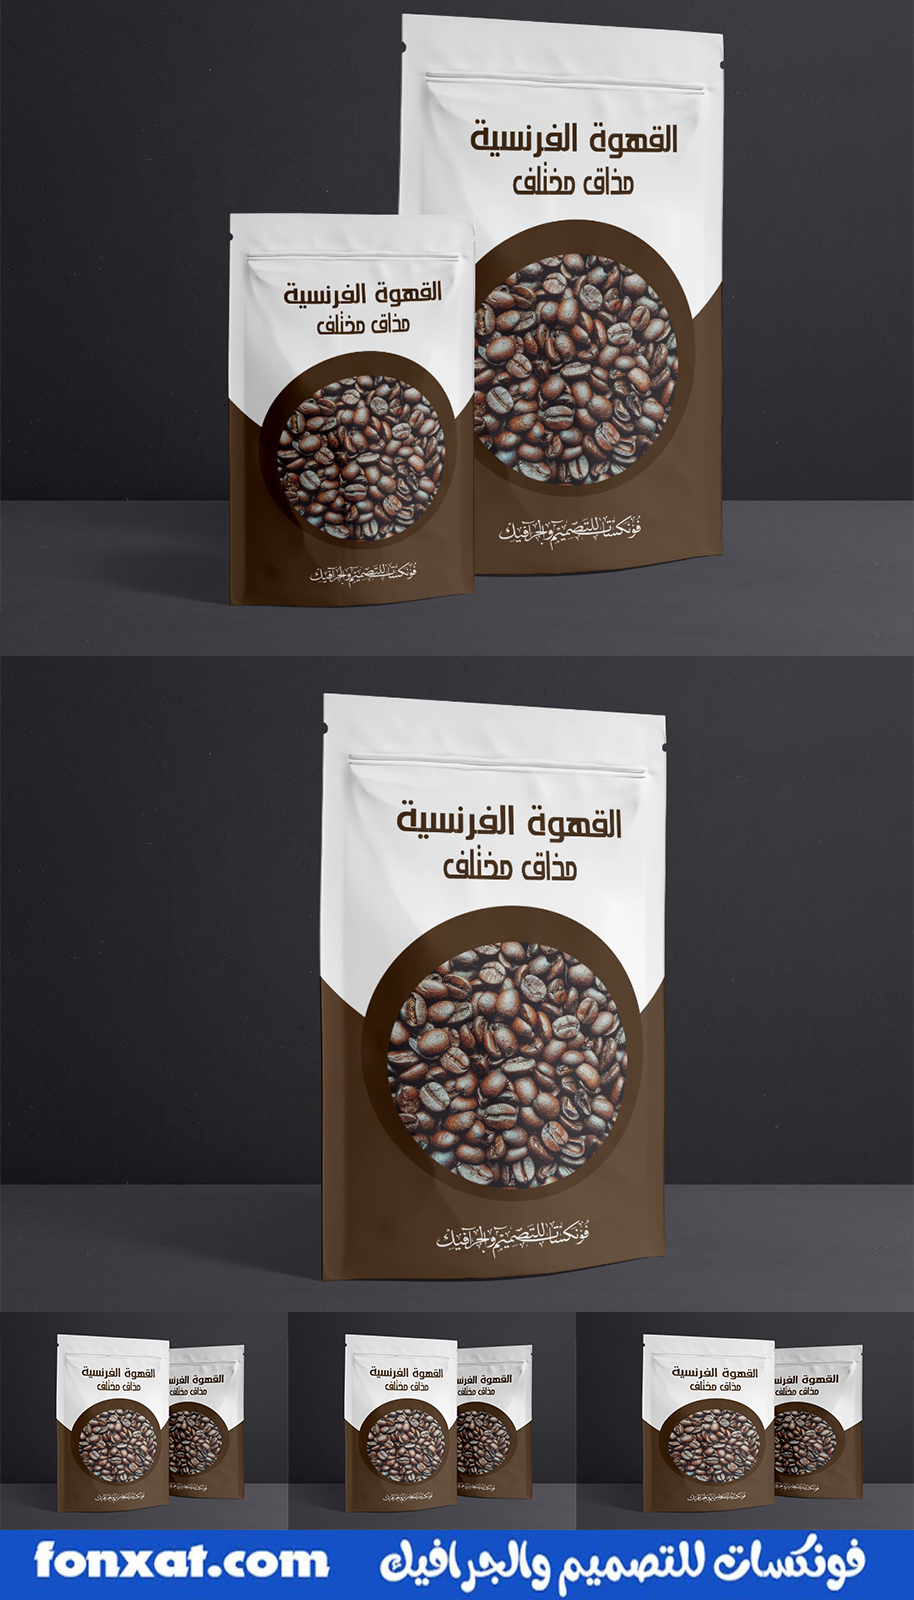 Mockups psd offer designs for coffee bags or any other products